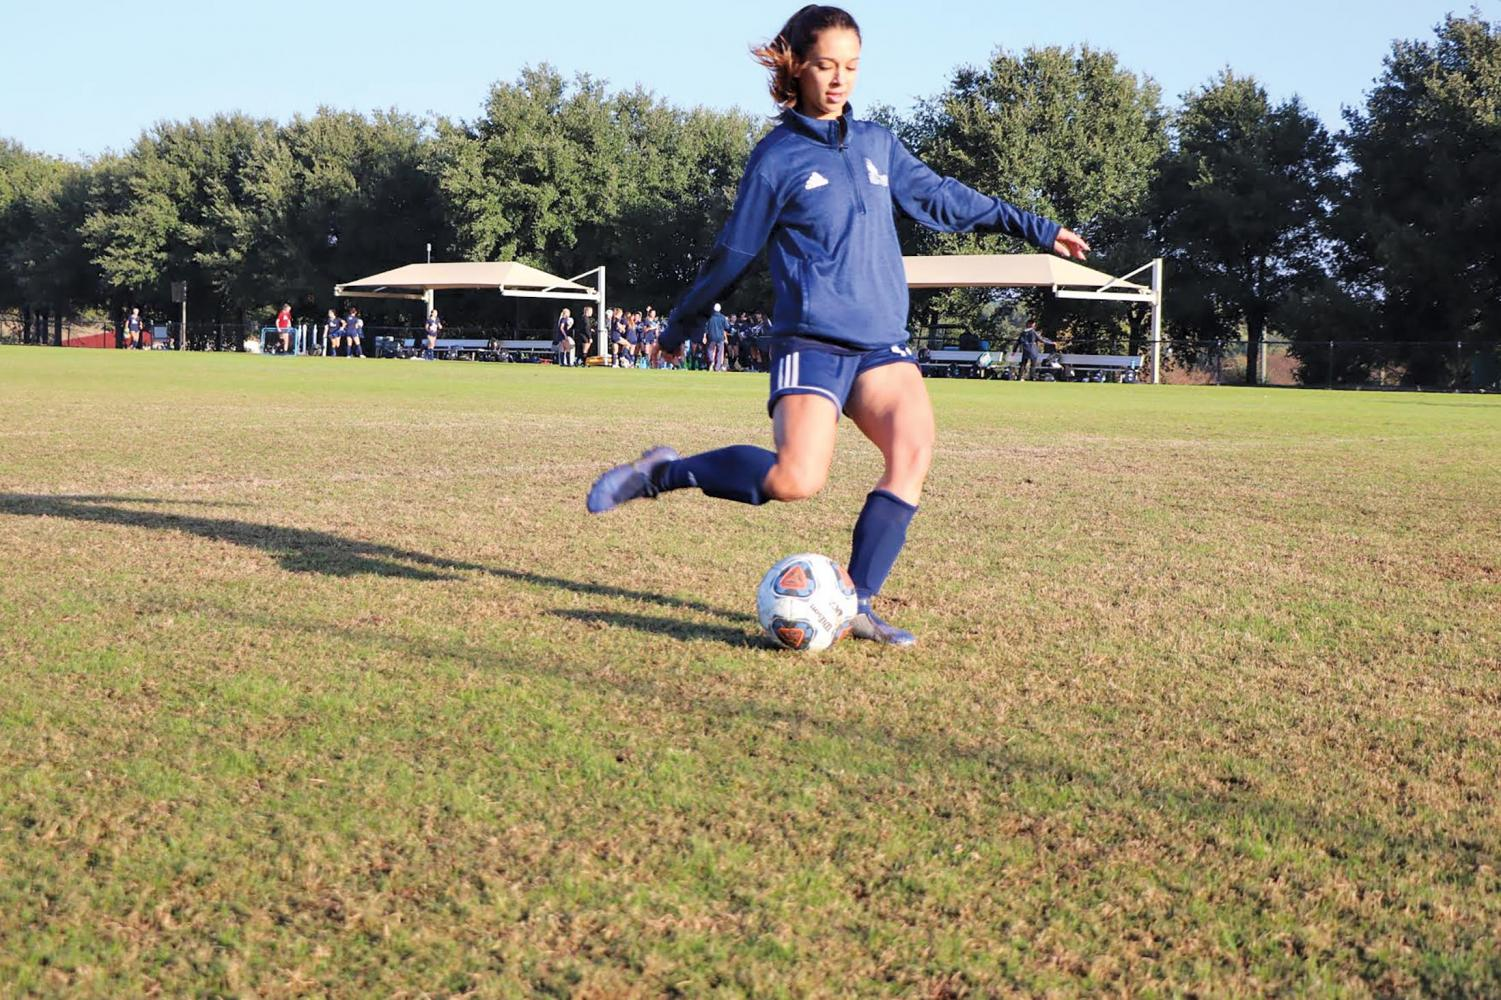 Elianna Chavez practices in preparation for this week's matchup with Angelo State. The midfielder recently earned the Lone Star Conference Offensive Player of the Week.